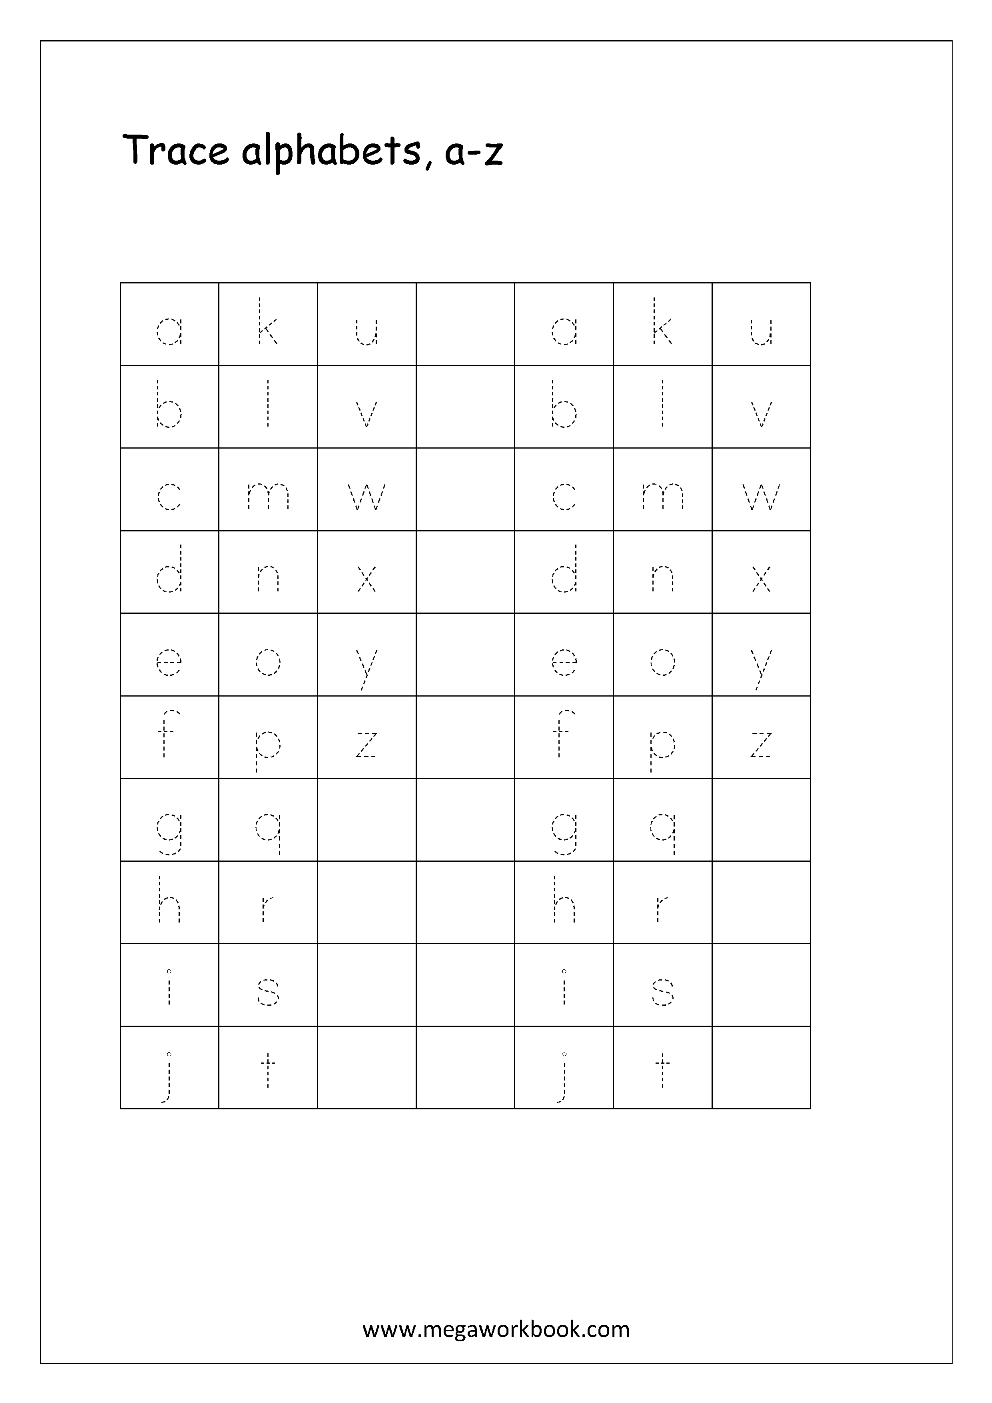 Alphabet Tracing Worksheets Small Letters Kids Jr Kg intended for Alphabet Tracing Worksheet Small Letters